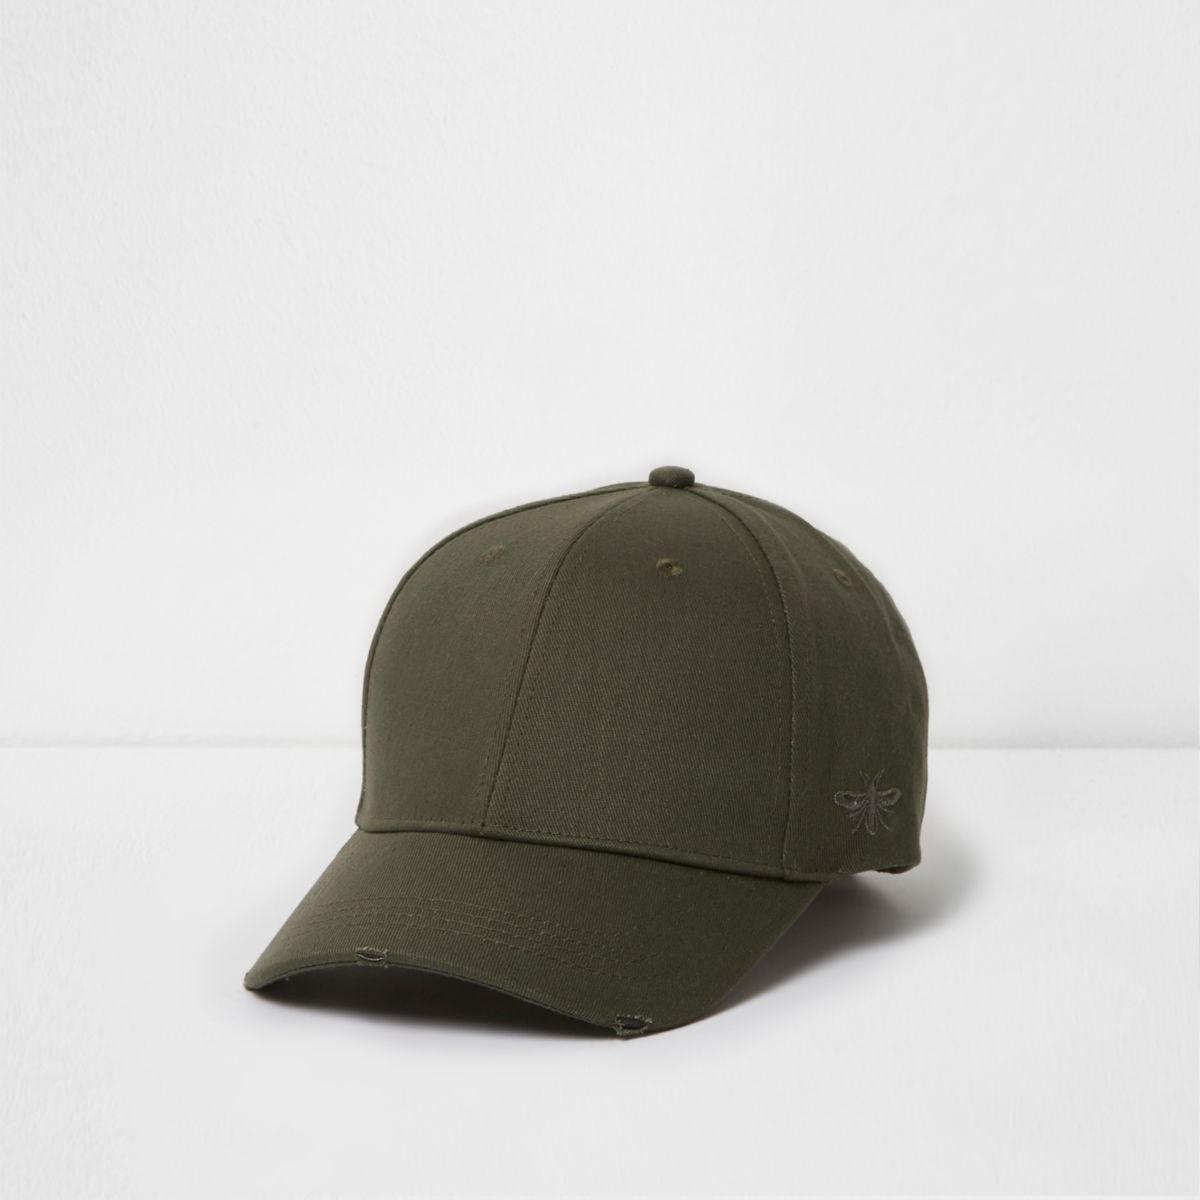 Green khaki wasp embroidered baseball cap